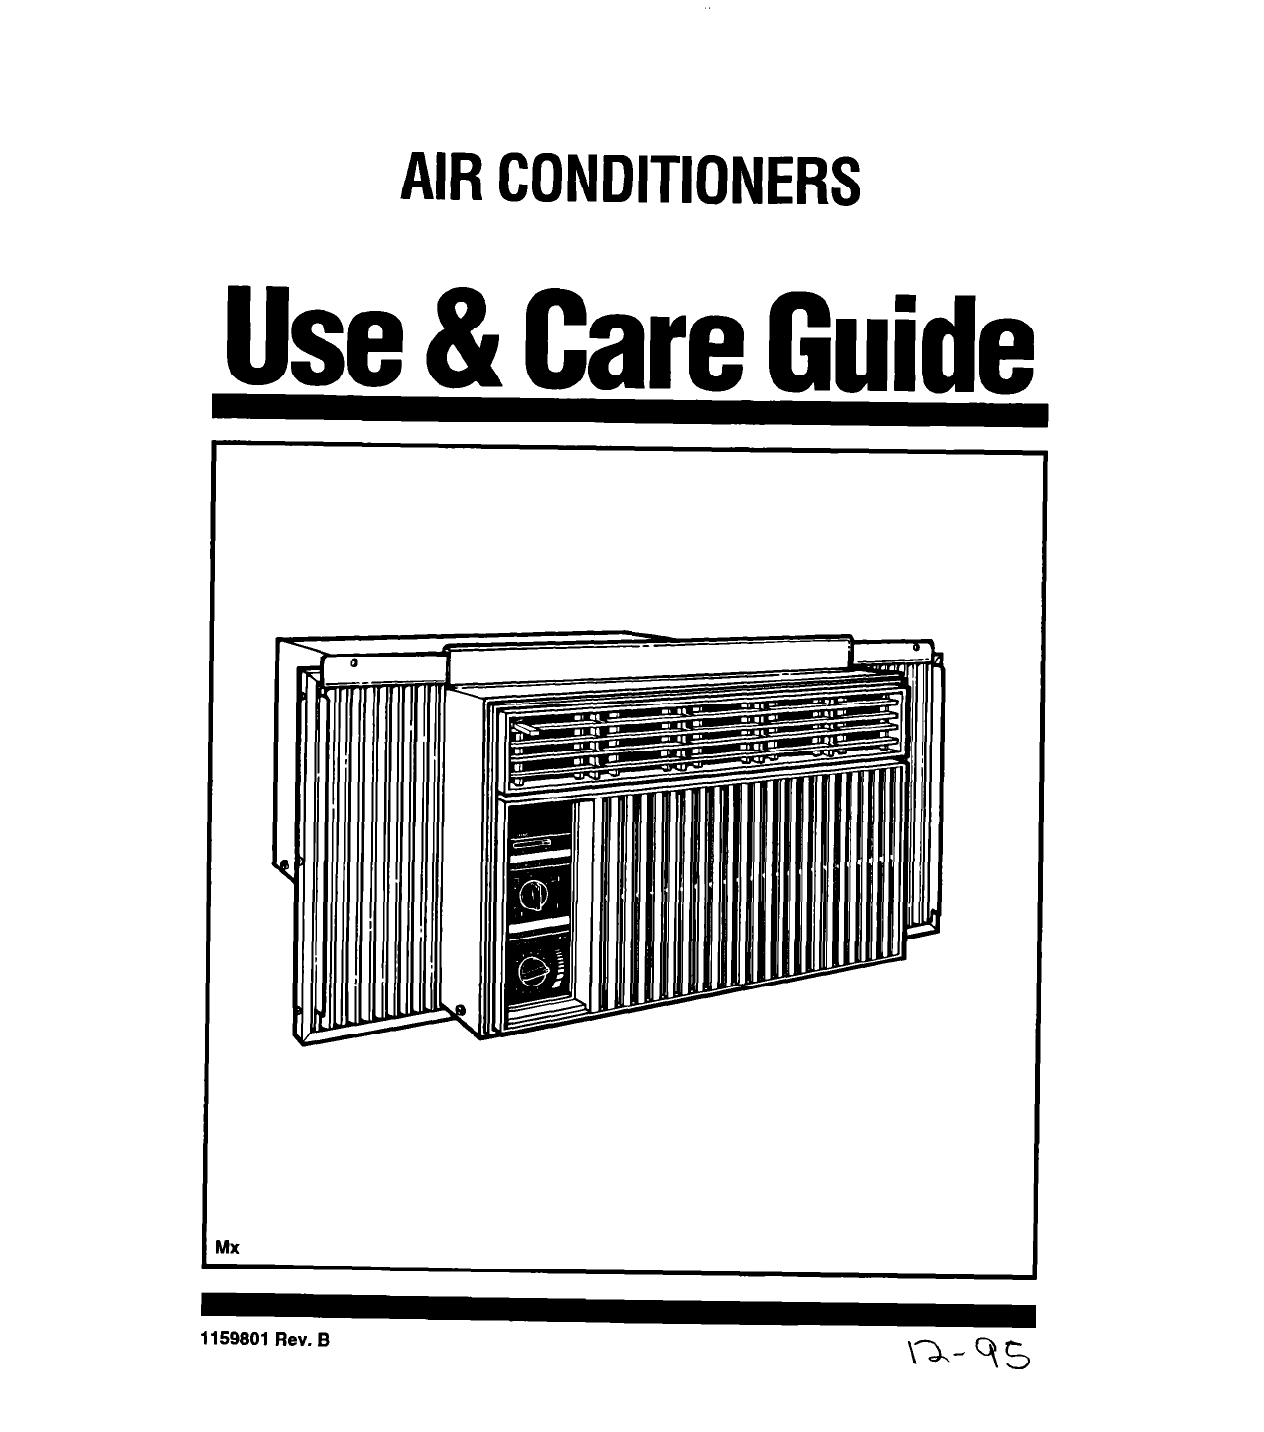 whirlpool air conditioner 1159801 user guide manualsonline com rh homeappliance manualsonline com whirlpool air conditioner manual 6th sense whirlpool air conditioner manual acp102pr3